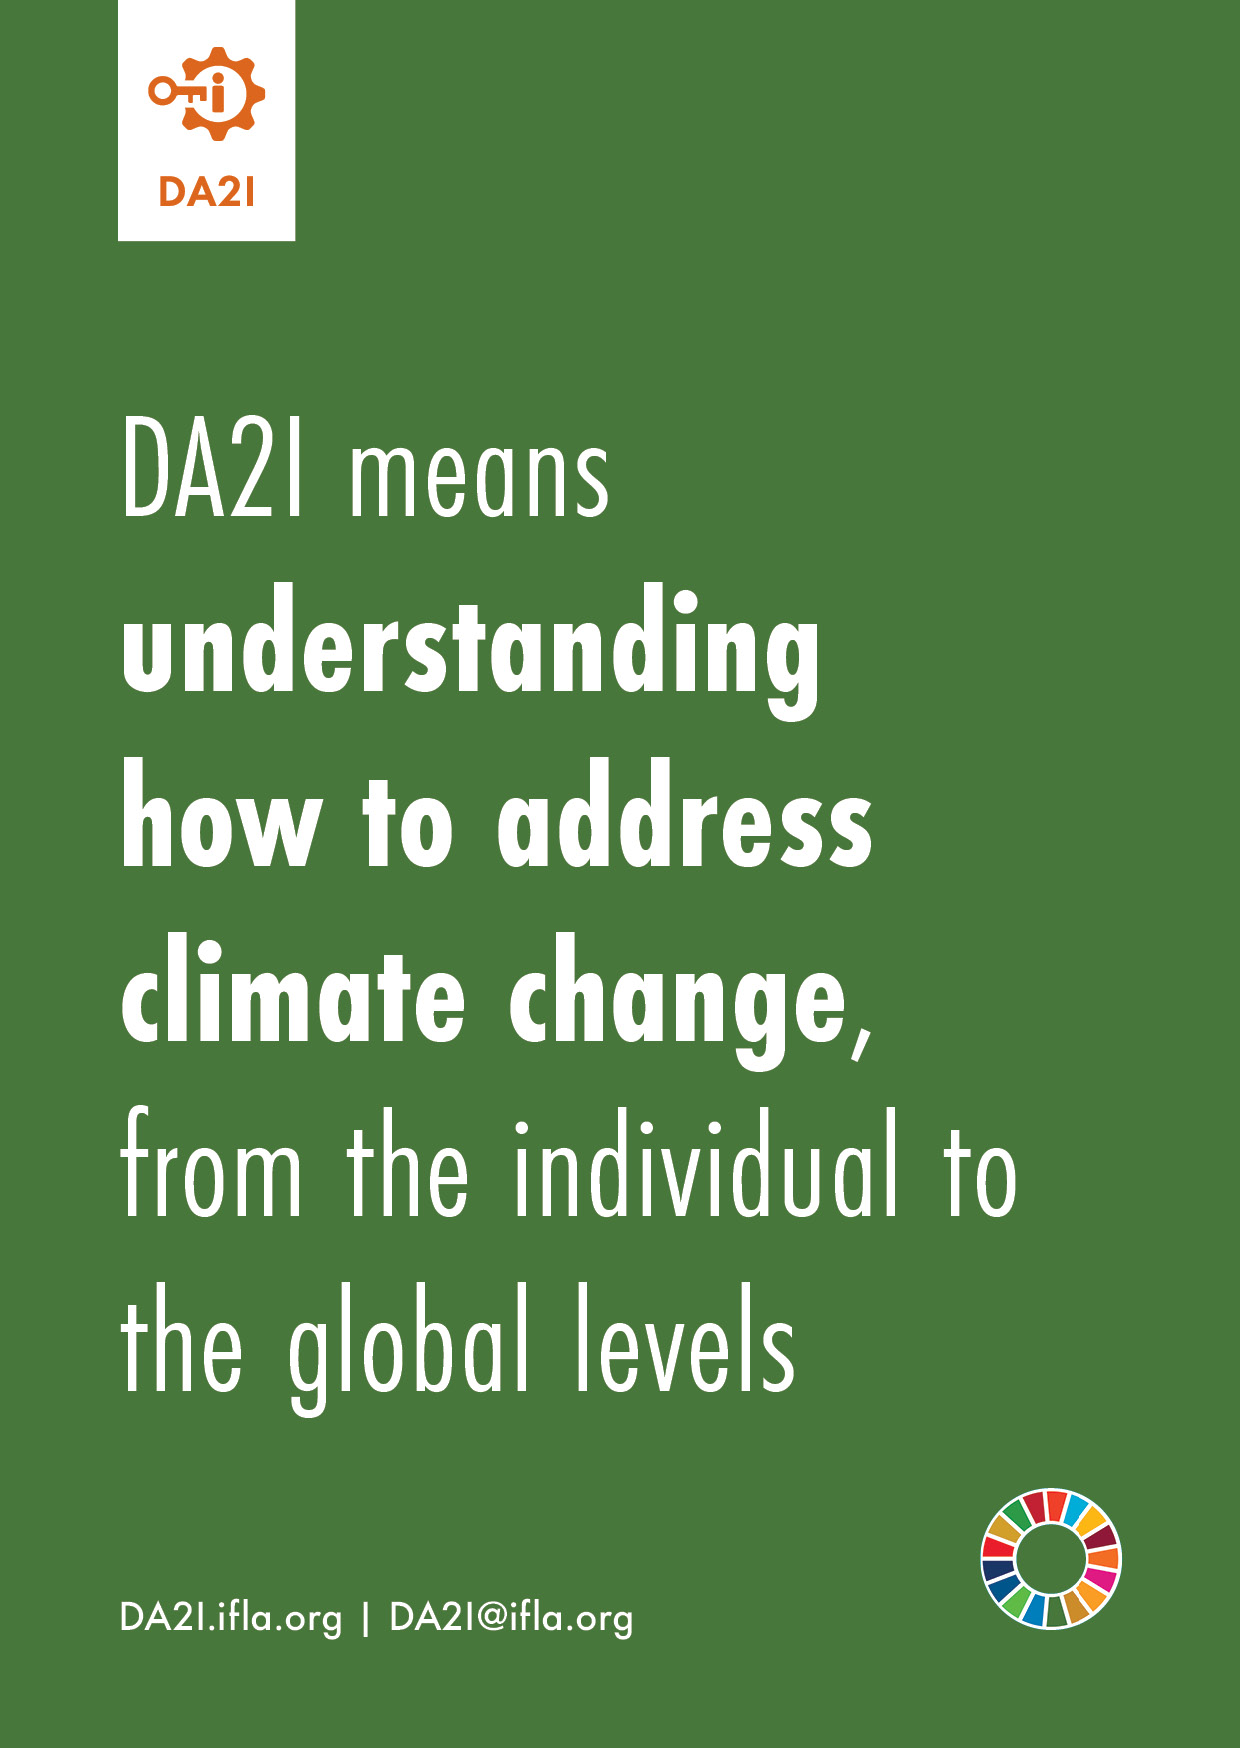 DA2I means understanding how to address climate change, from the individual to the global levels